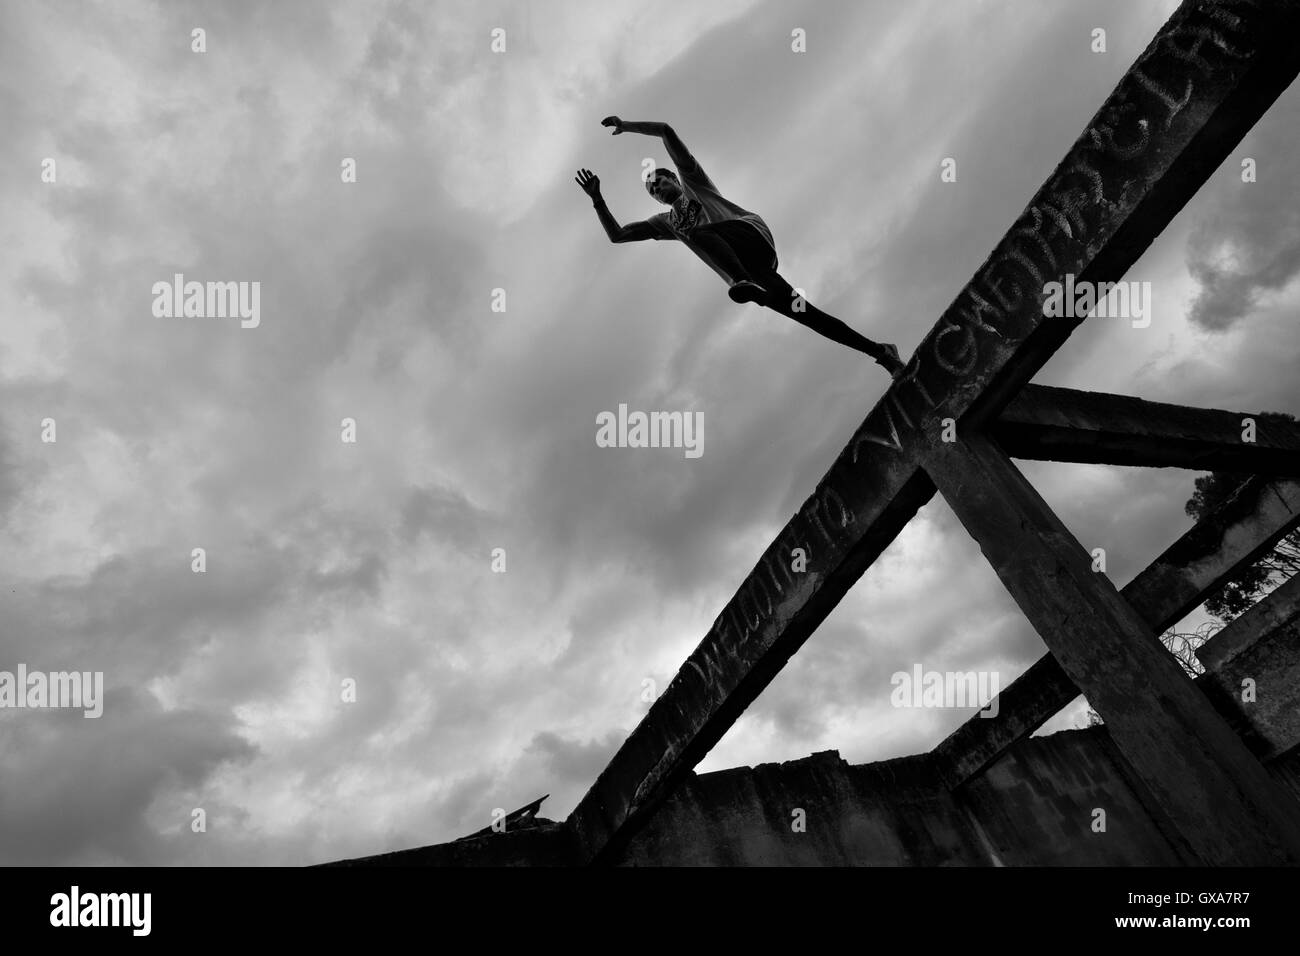 Jose Rodriguez, a freerunner from Plus Parkour team, jumps from the top of the ruined walls in Bogotá, Colombia. - Stock Image